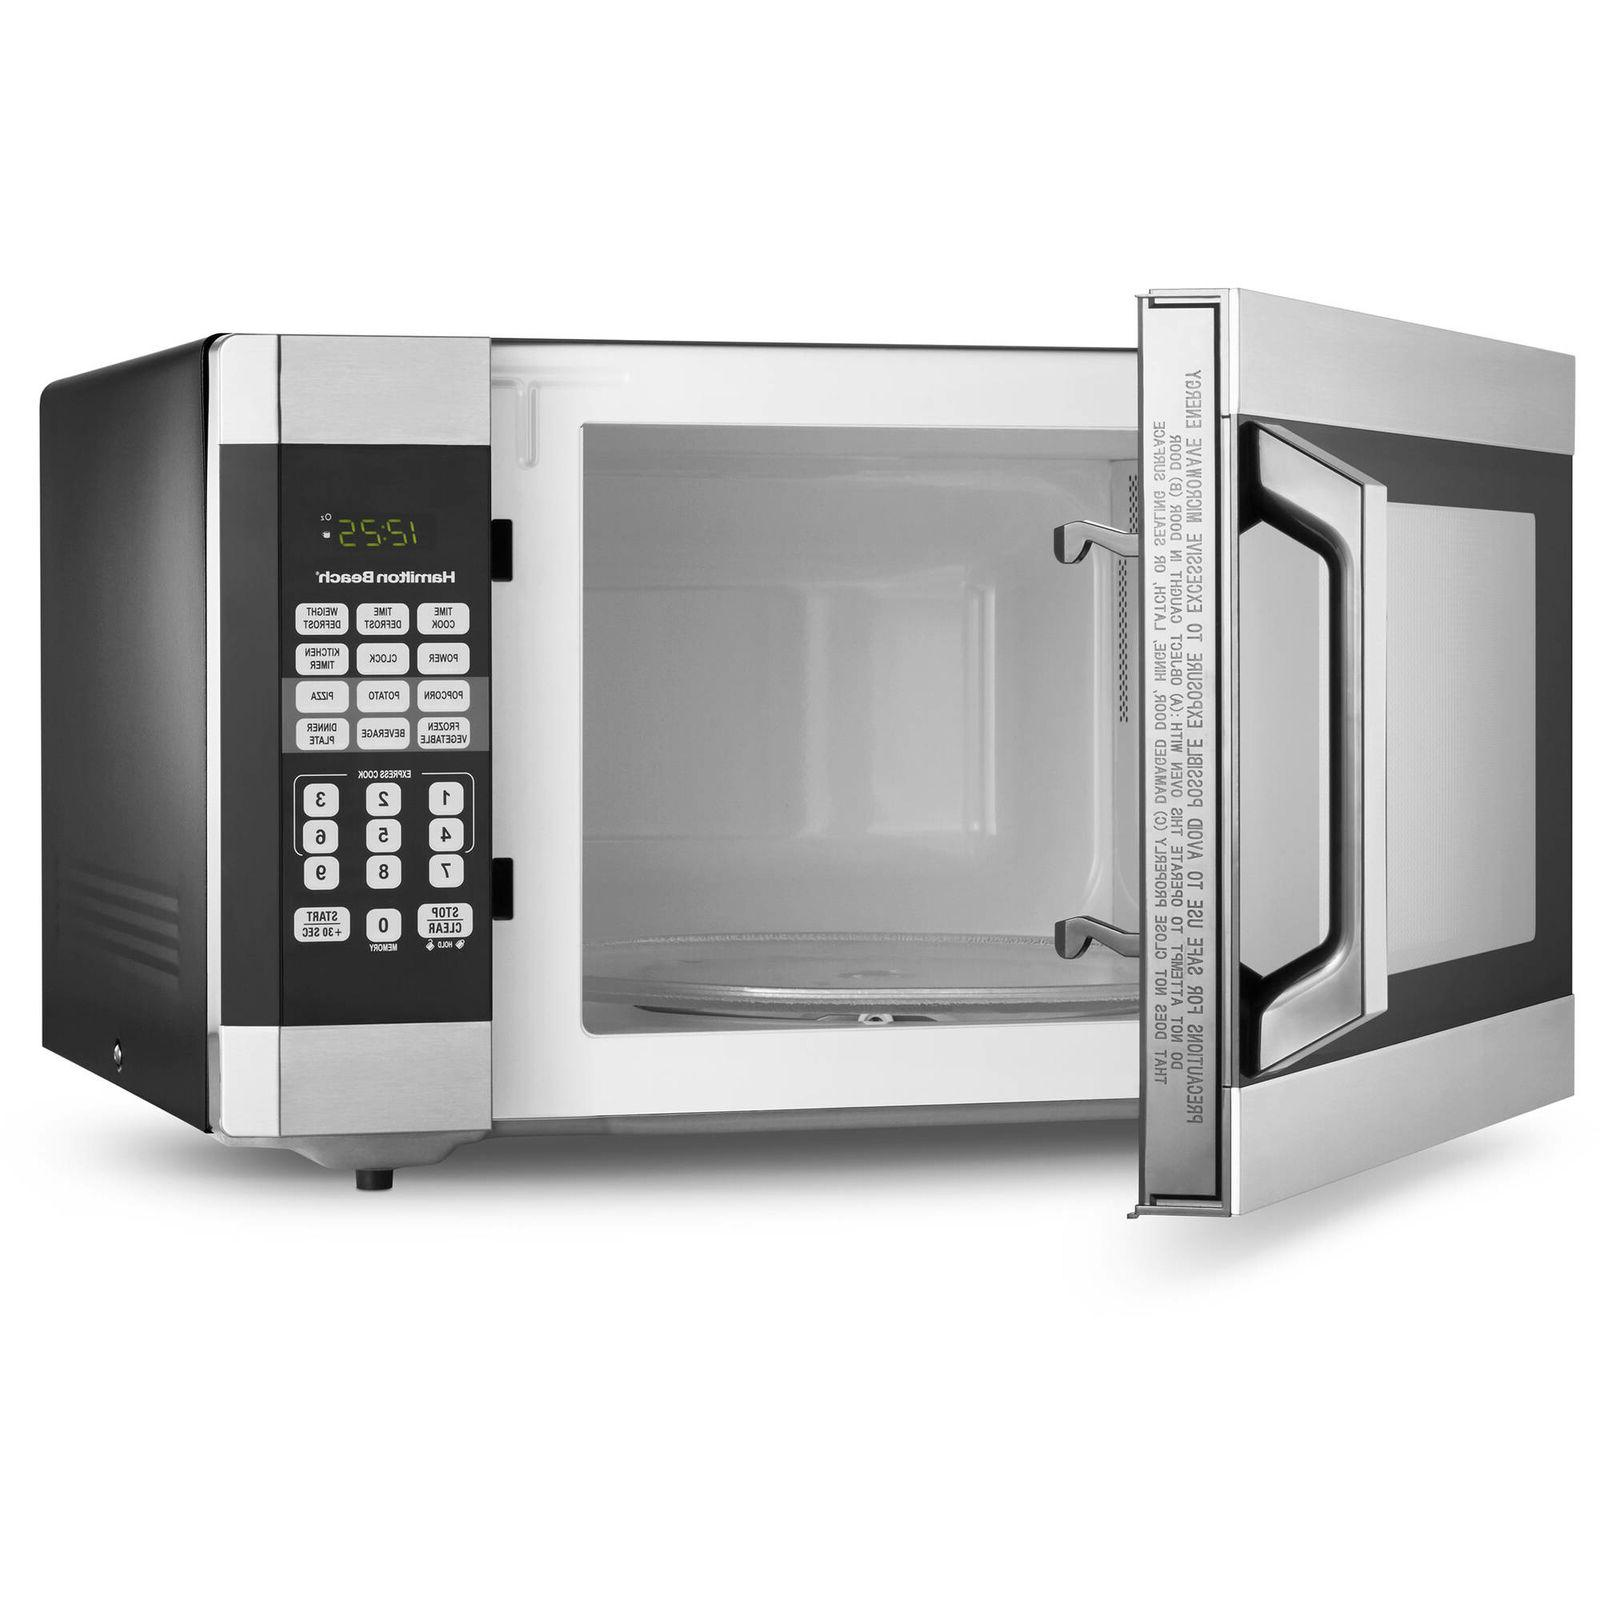 Microwave Oven 1.6 Cu Ft Countertop Stainless Steel 1 Touch